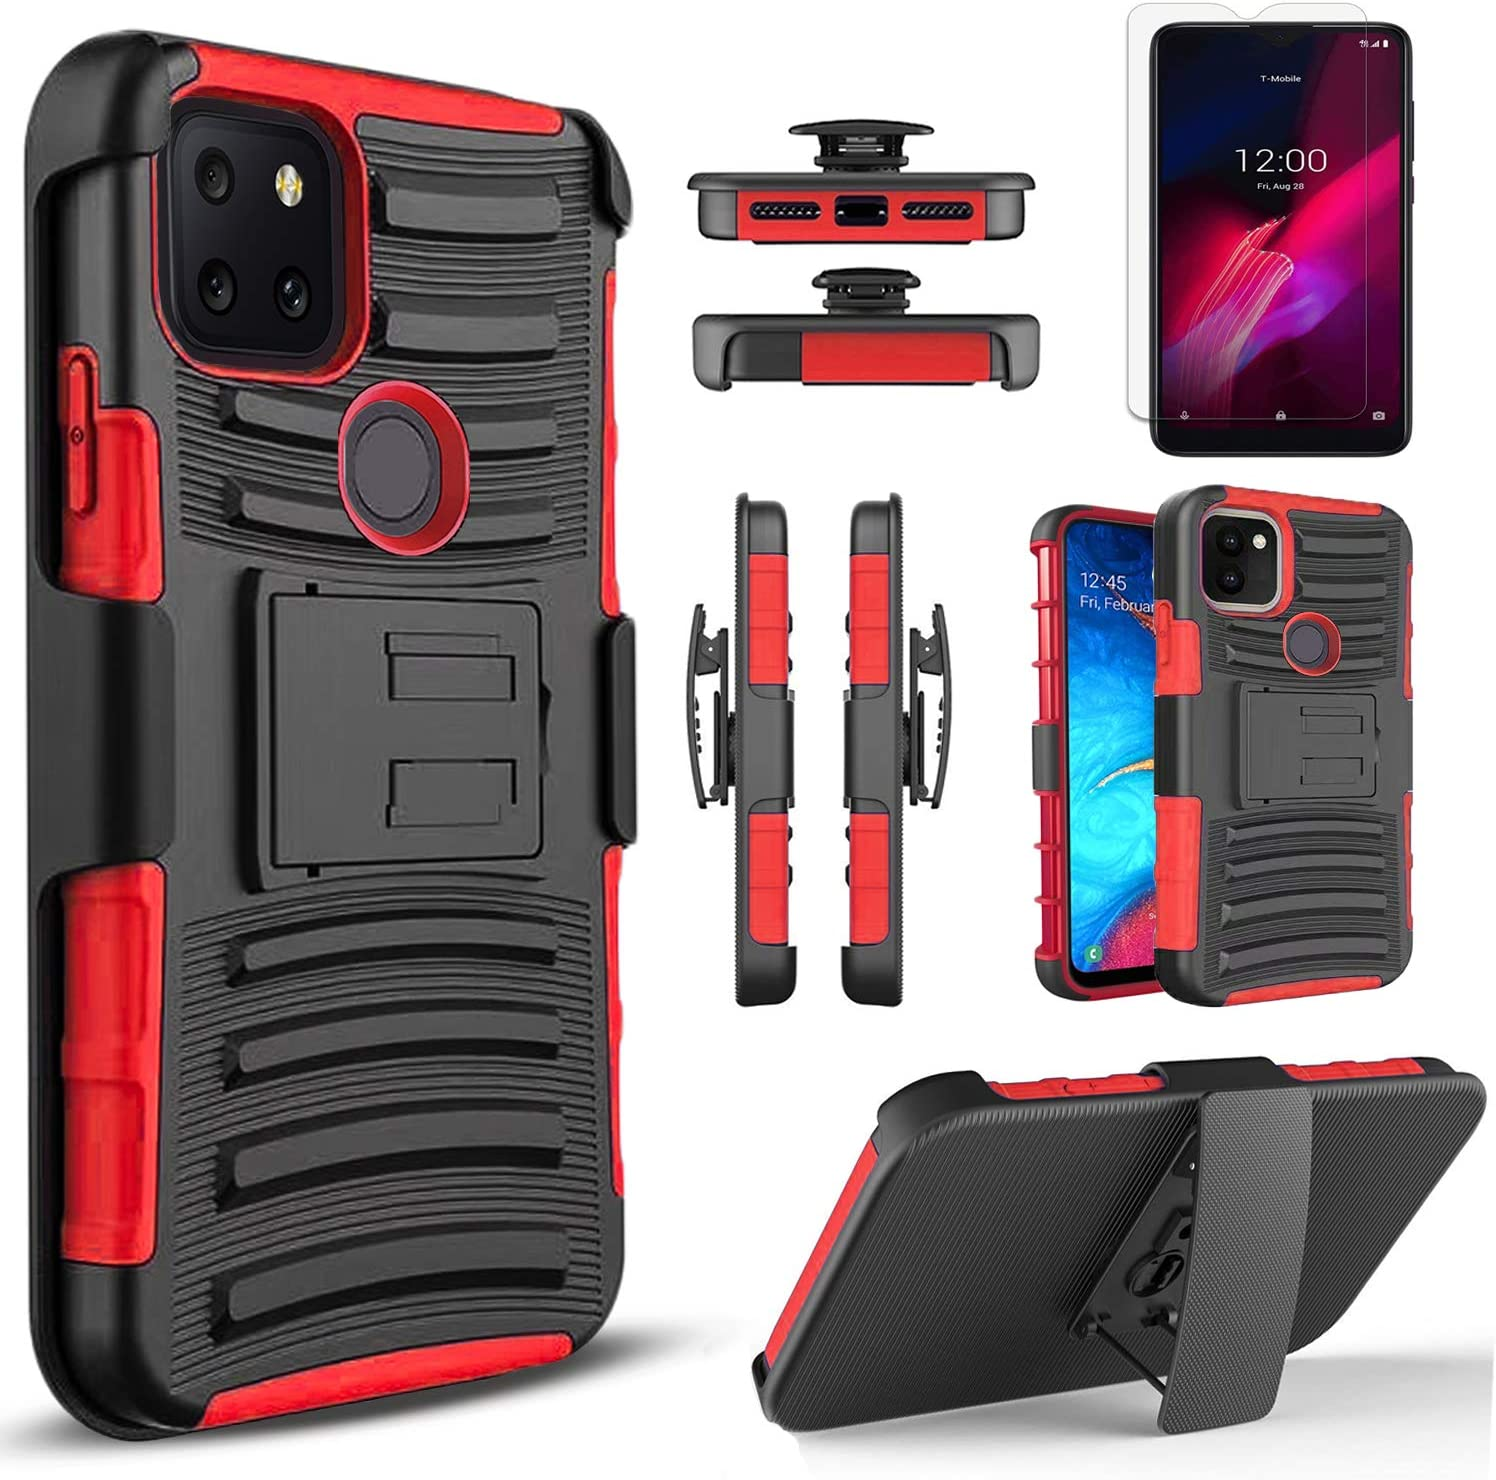 Circlemalls - T-Mobile Revvl 5G Phone Case, [Not Fit Revvl 4] With [Tempered Glass Screen Protector Included], Armor Heavy Duty Kickstand Cover With Belt Clip Holster - Red